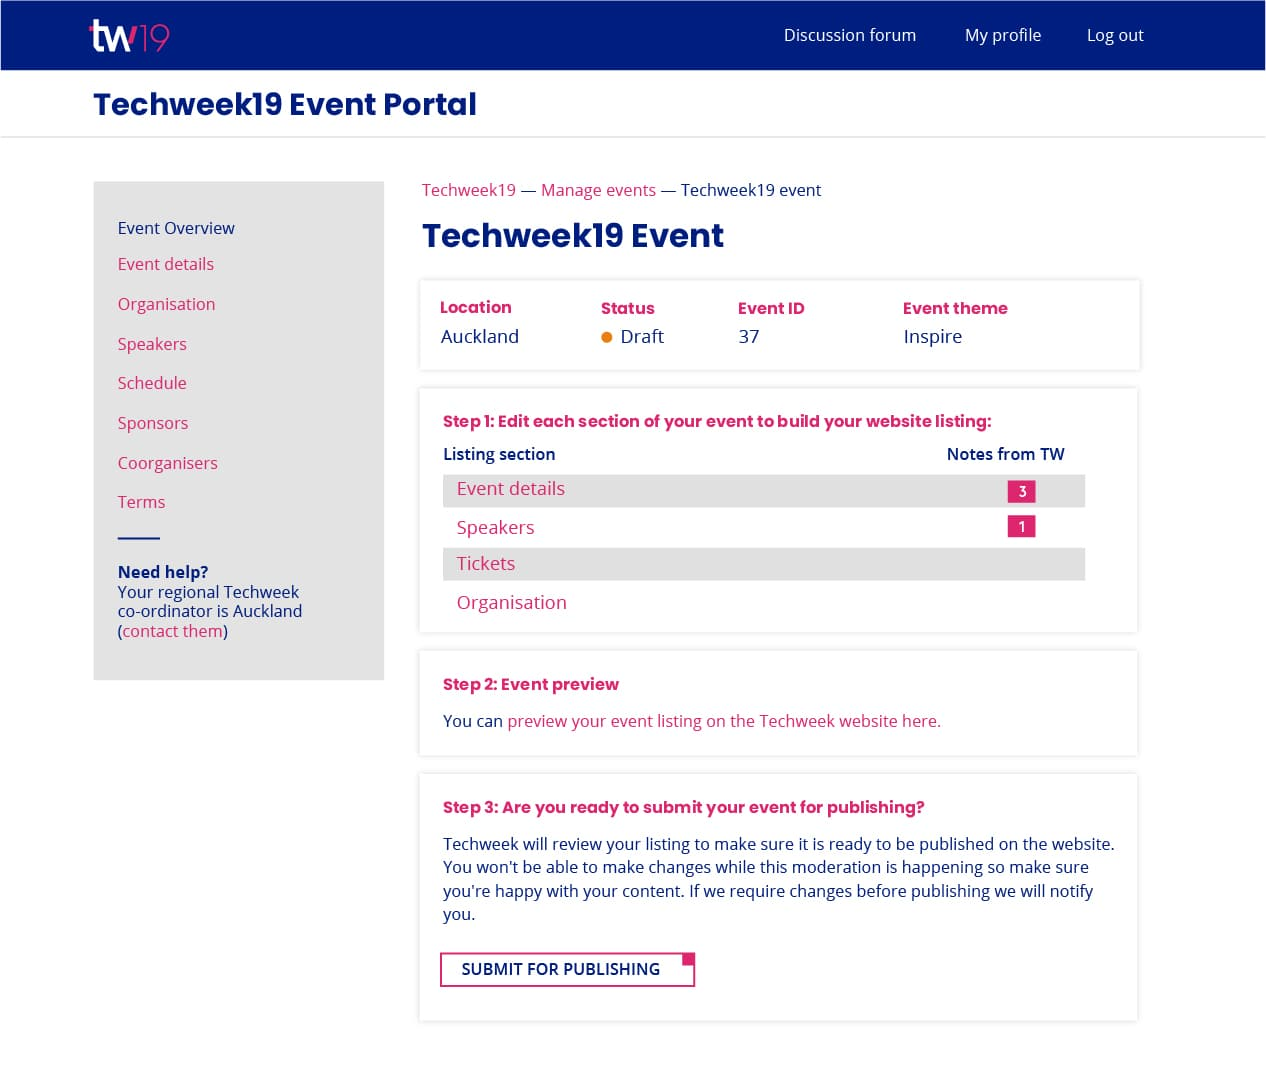 Techweek Event portal screen